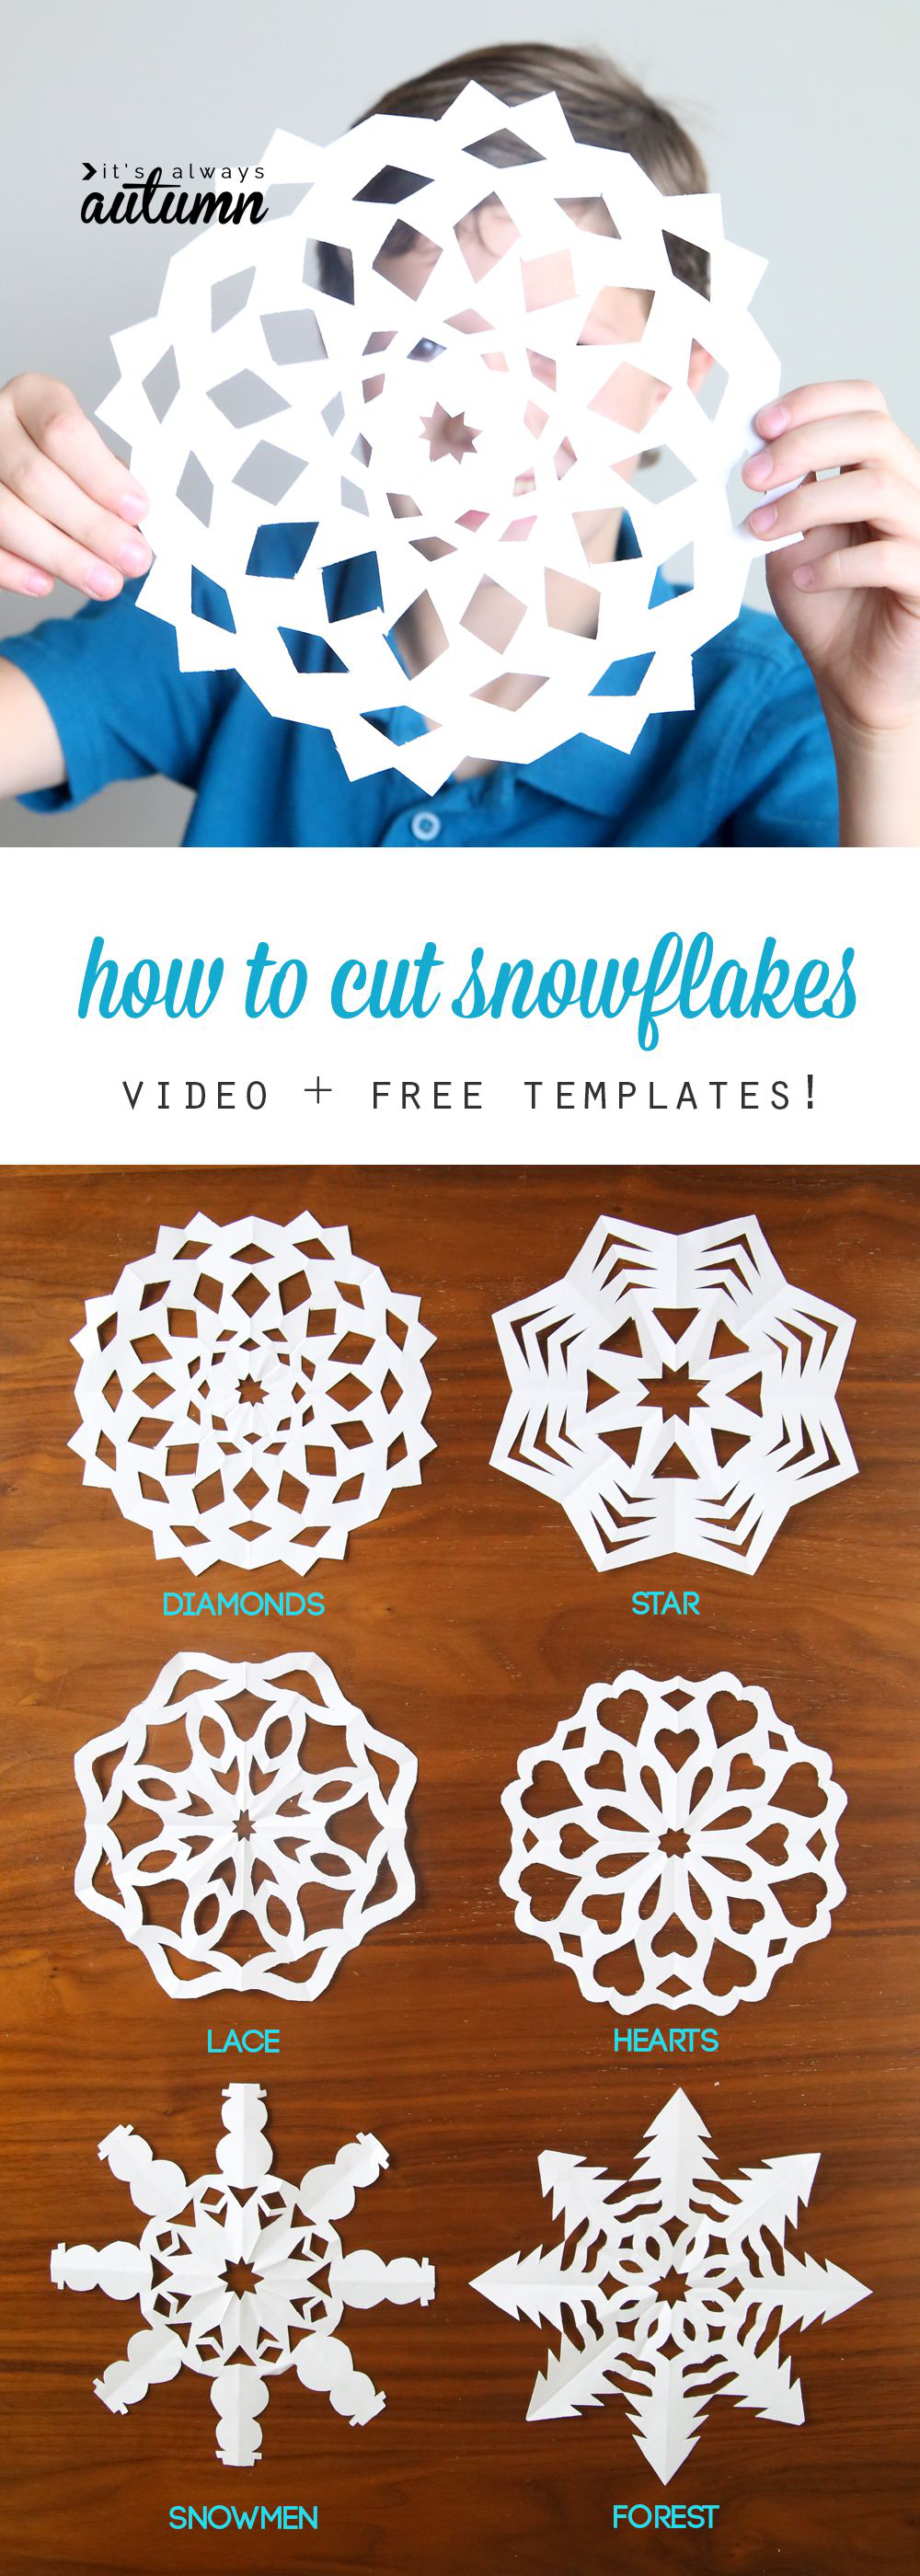 Cutting Out Snowflakes Is One Of Our Favorite Holiday Traditions